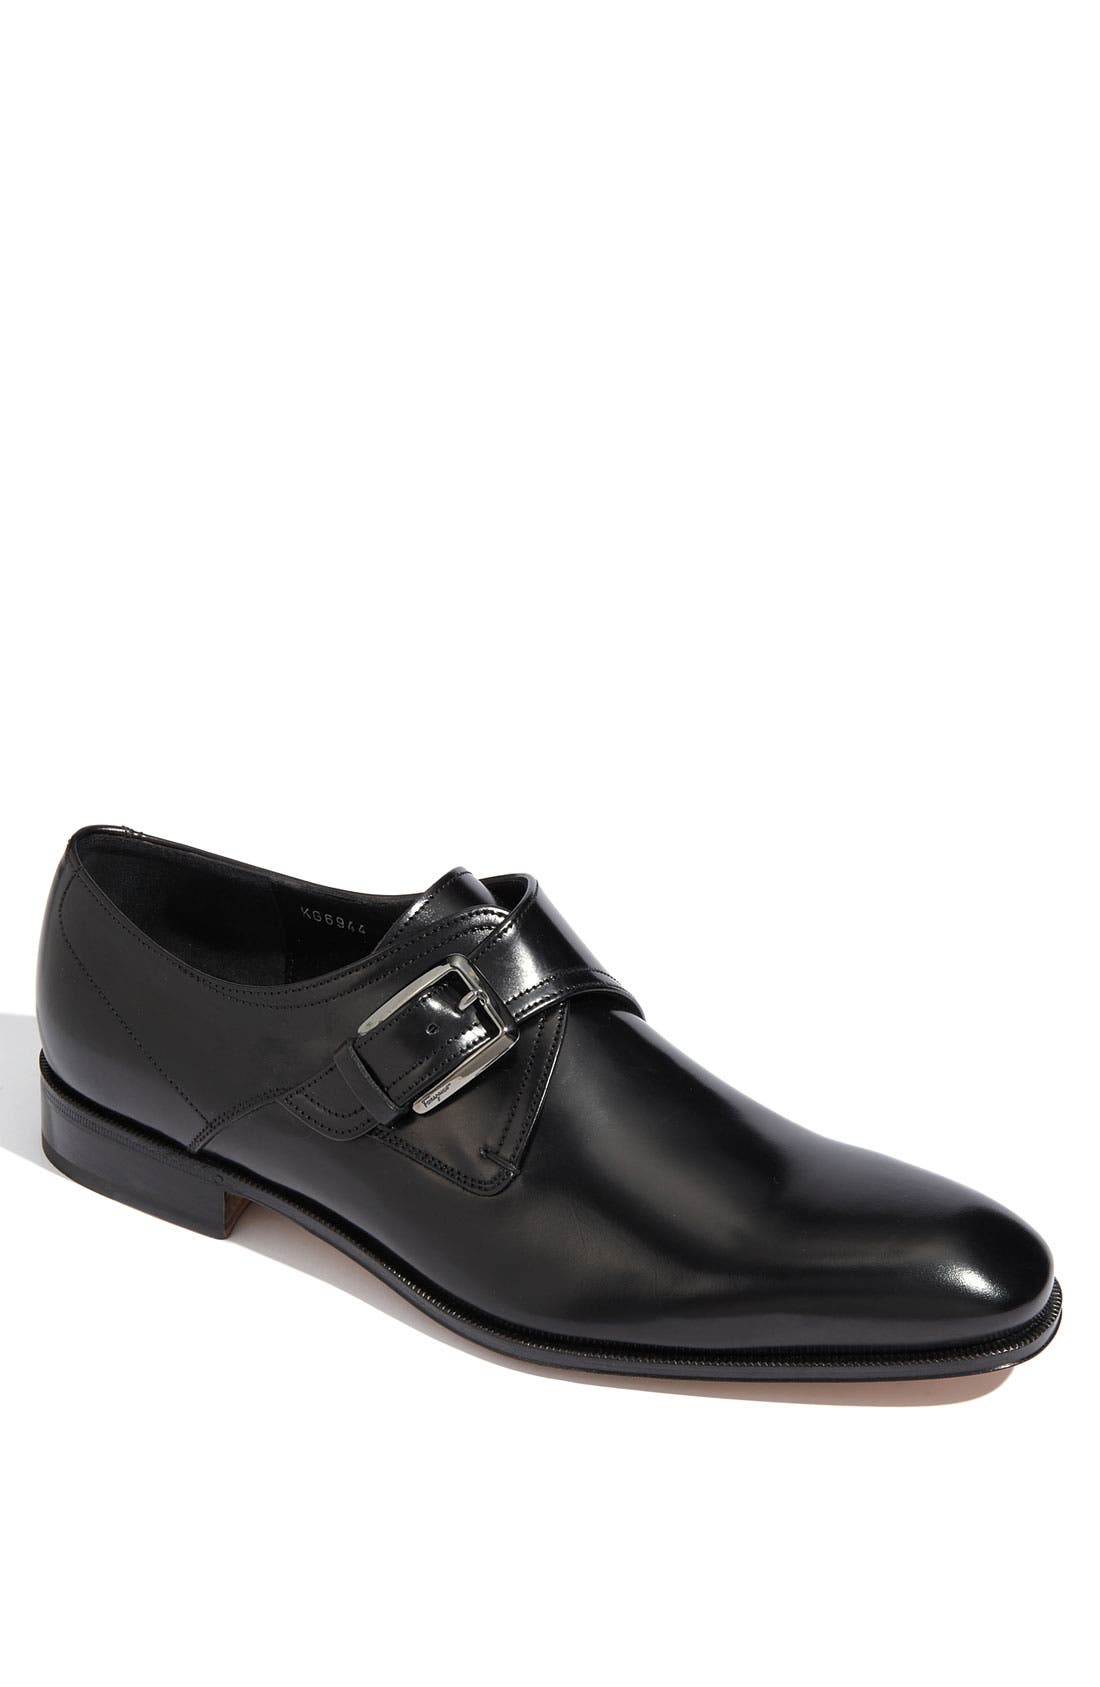 Alternate Image 1 Selected - Salvatore Ferragamo 'Cipro' Loafer